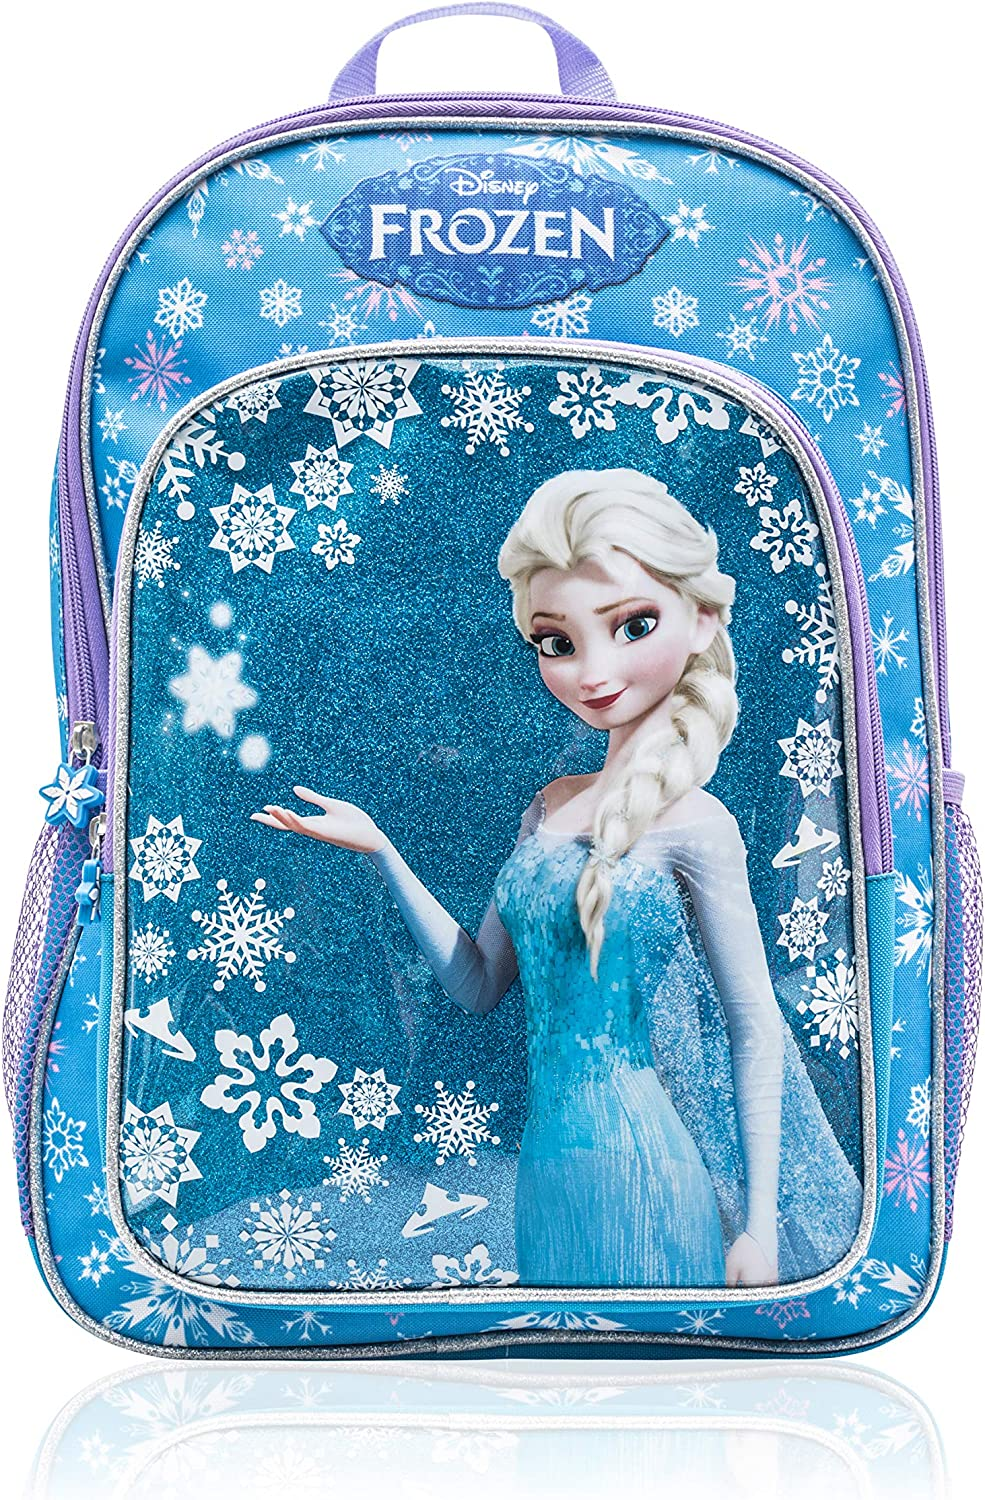 Disney Frozen II 16 inch Backpack with Detachable Lunch Box 2 Piece Set for kids